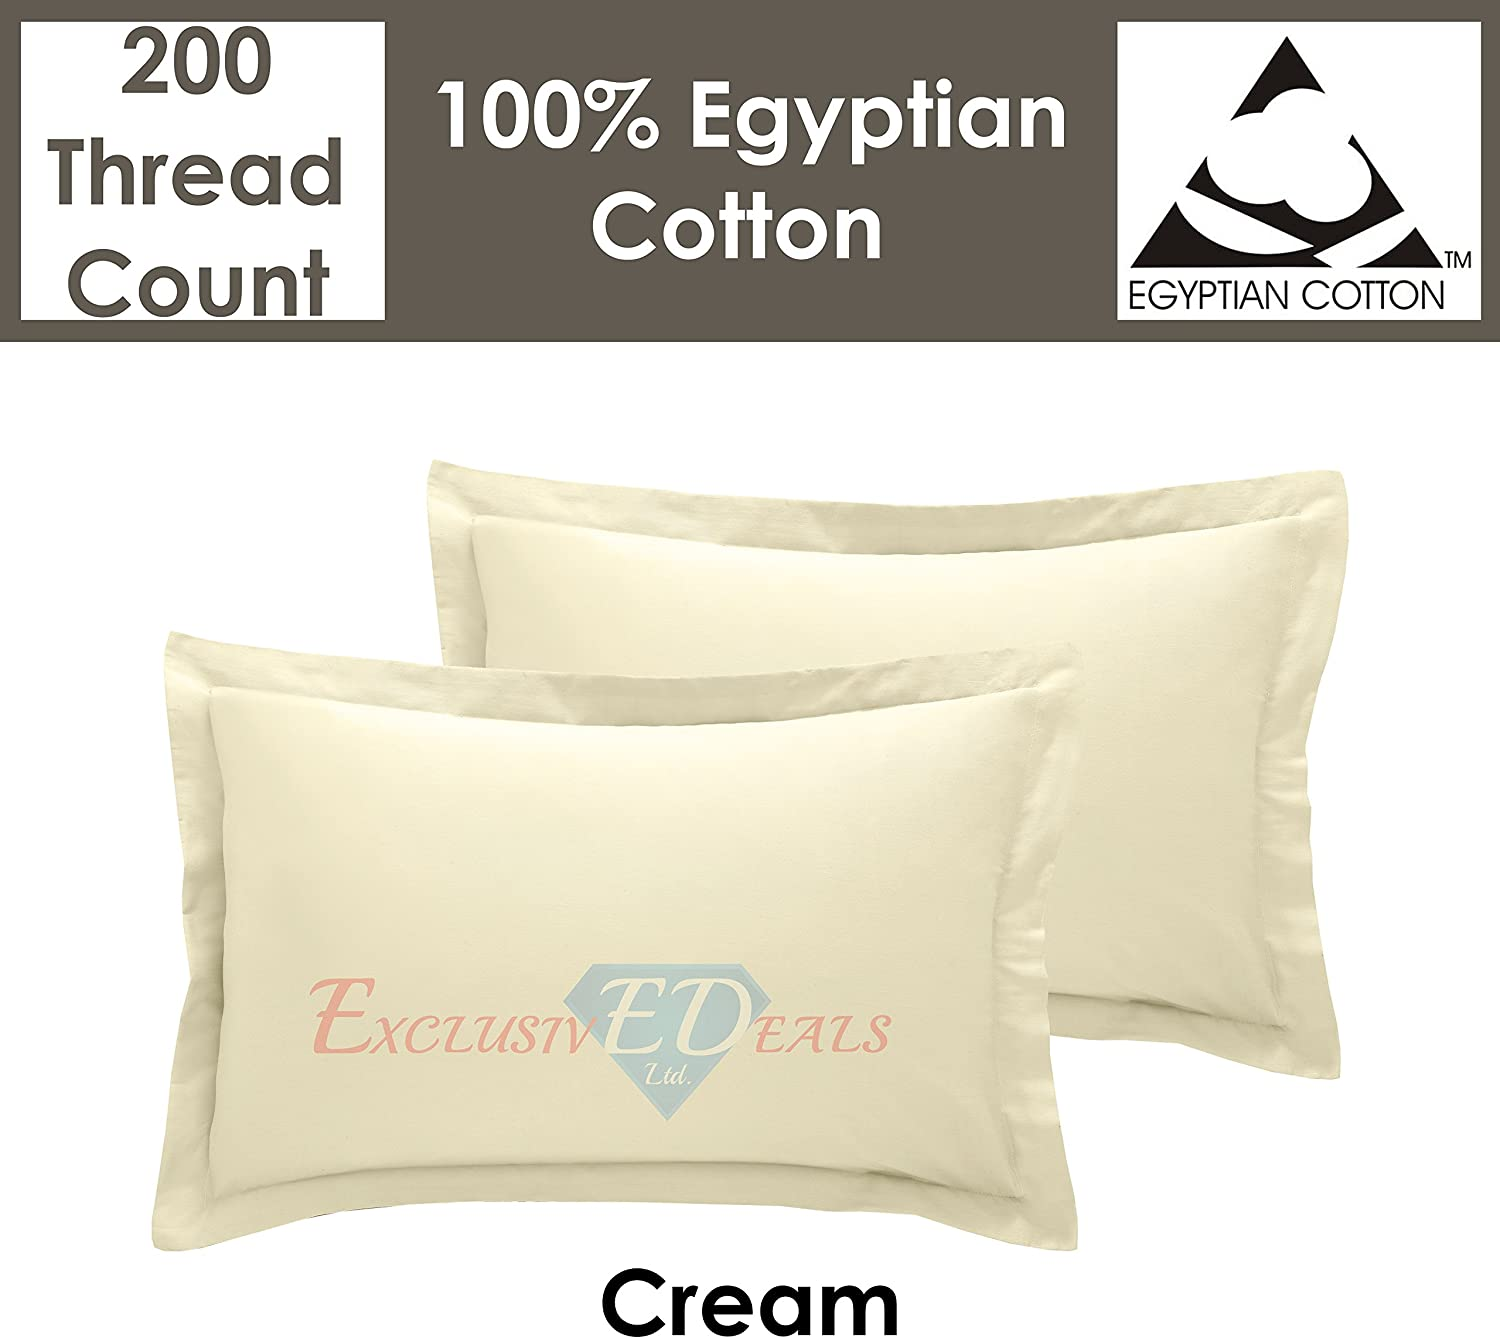 2 X Pillow Case Pair Luxury Egyptian Cotton 200TC Housewife Pillows Cover Cases